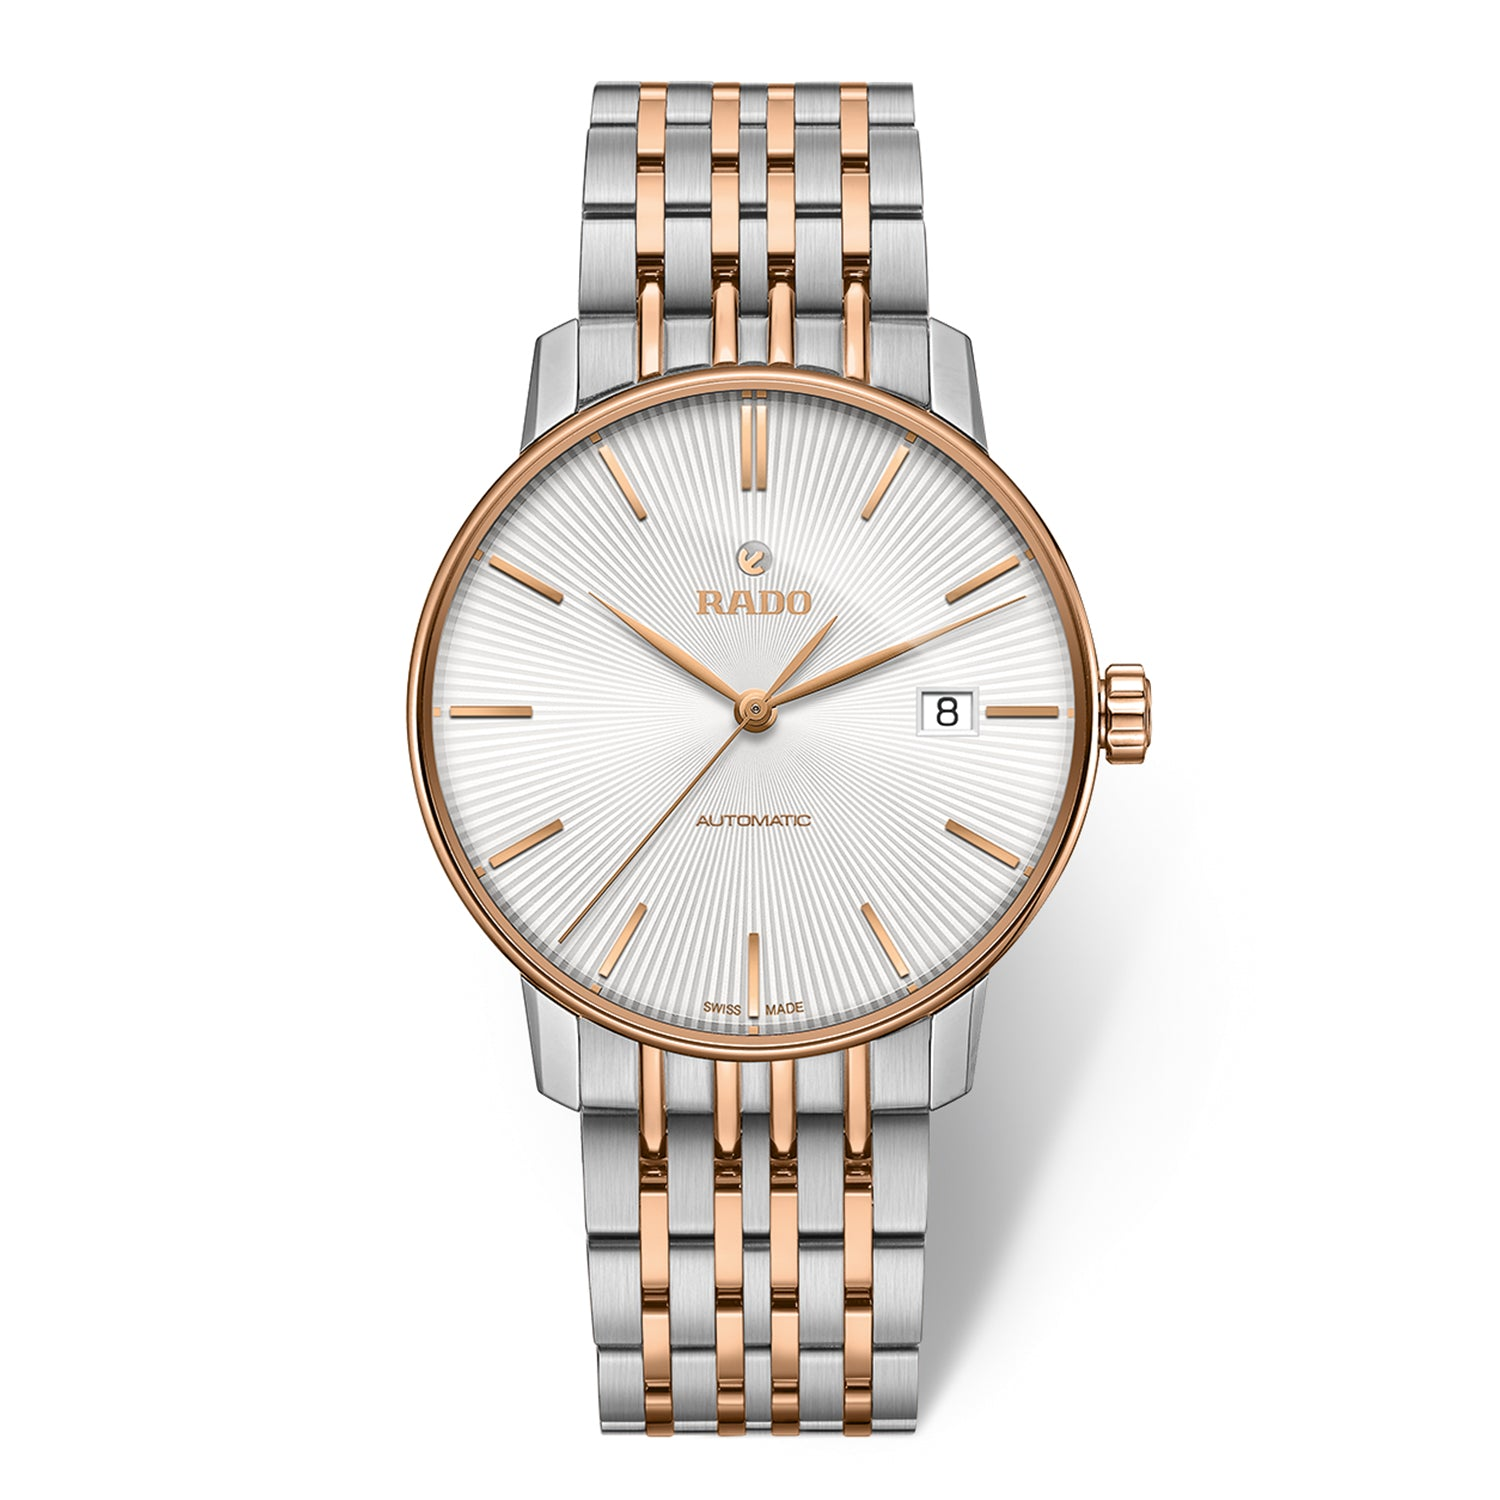 Rado Coupole Classic L watch with 9-Link Stainless steel bracelet and rose PVD, champagne dial